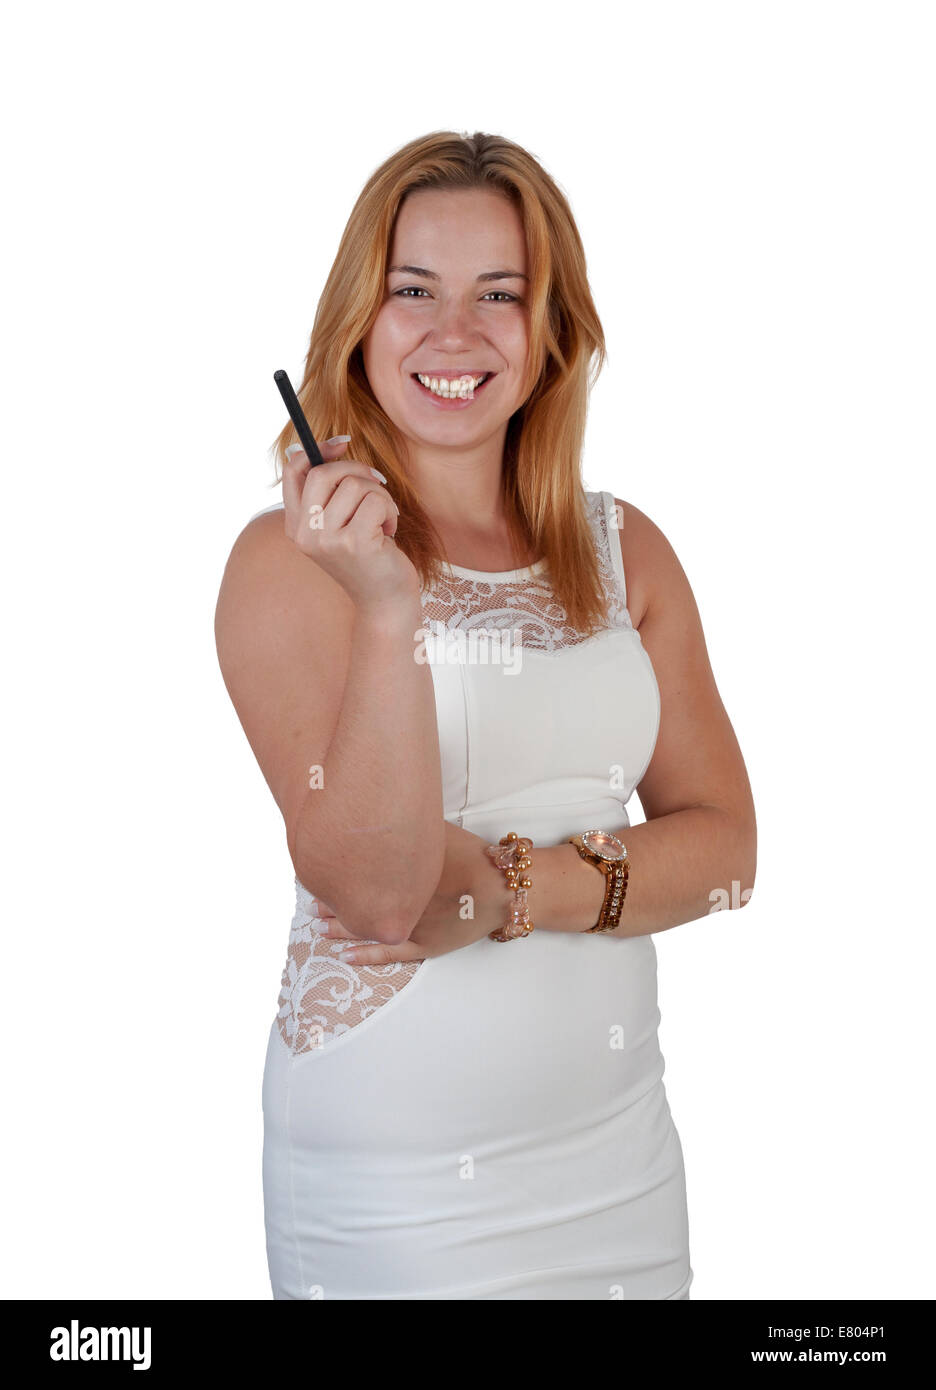 Beautiful young smiling woman in white dress with black e-cigarette. Isolated on white - Stock Image